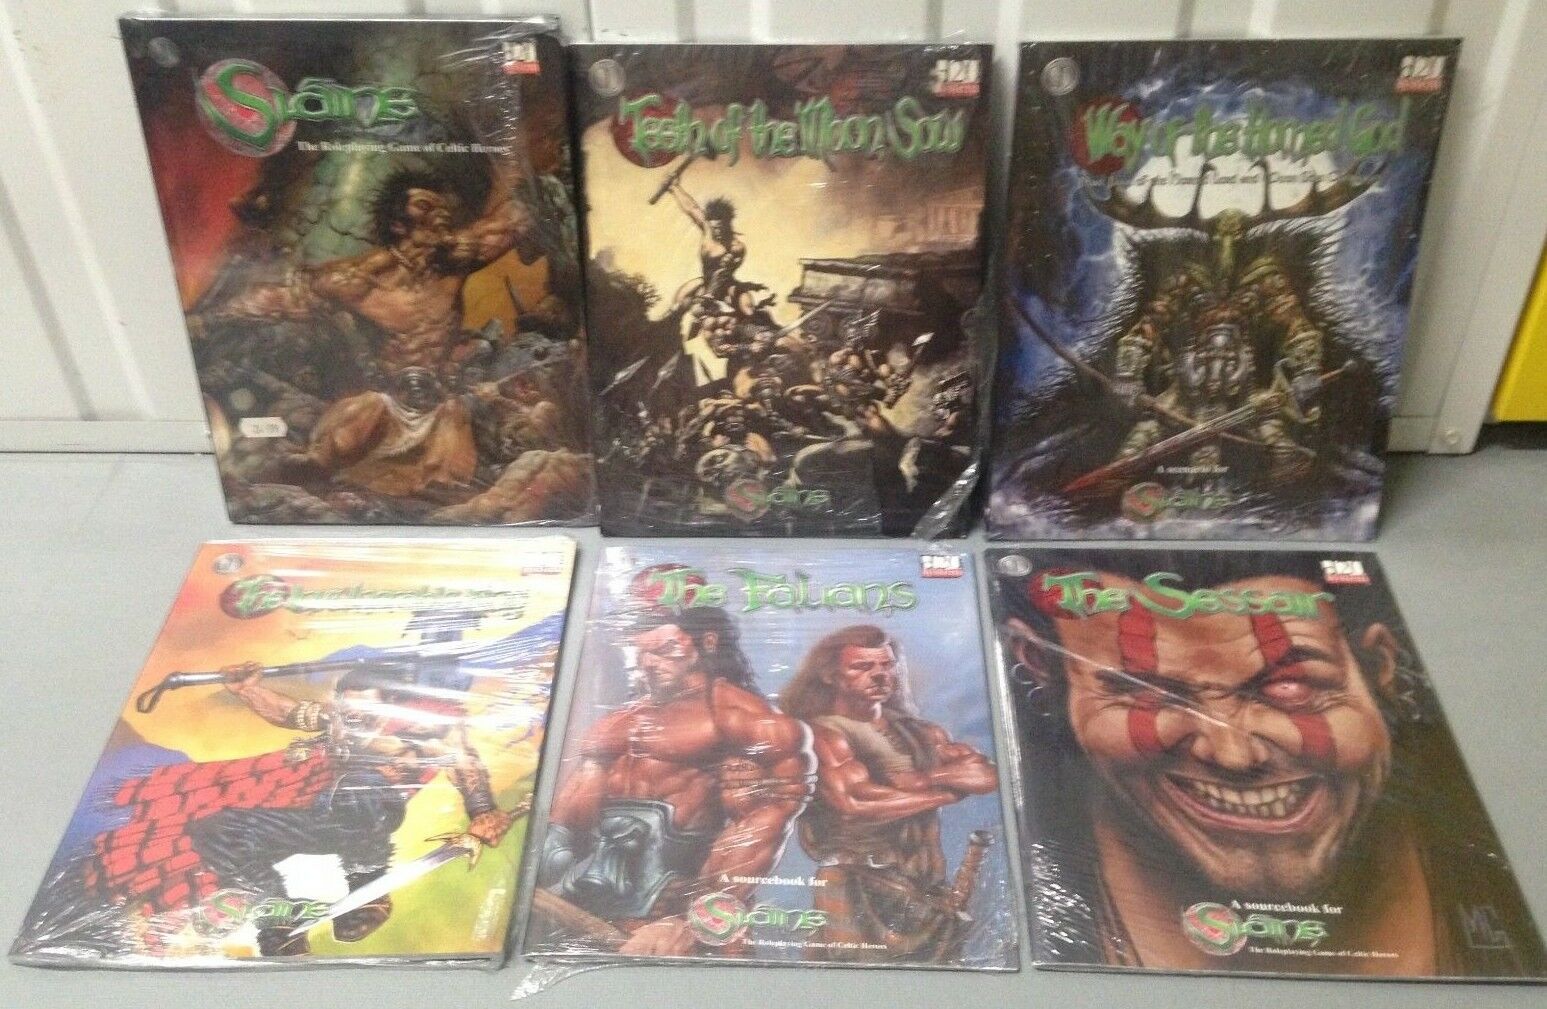 Slaine - - - RPG, Scenario's and Sourcebooks - 6 Books - All New and Sealed b4ed6b